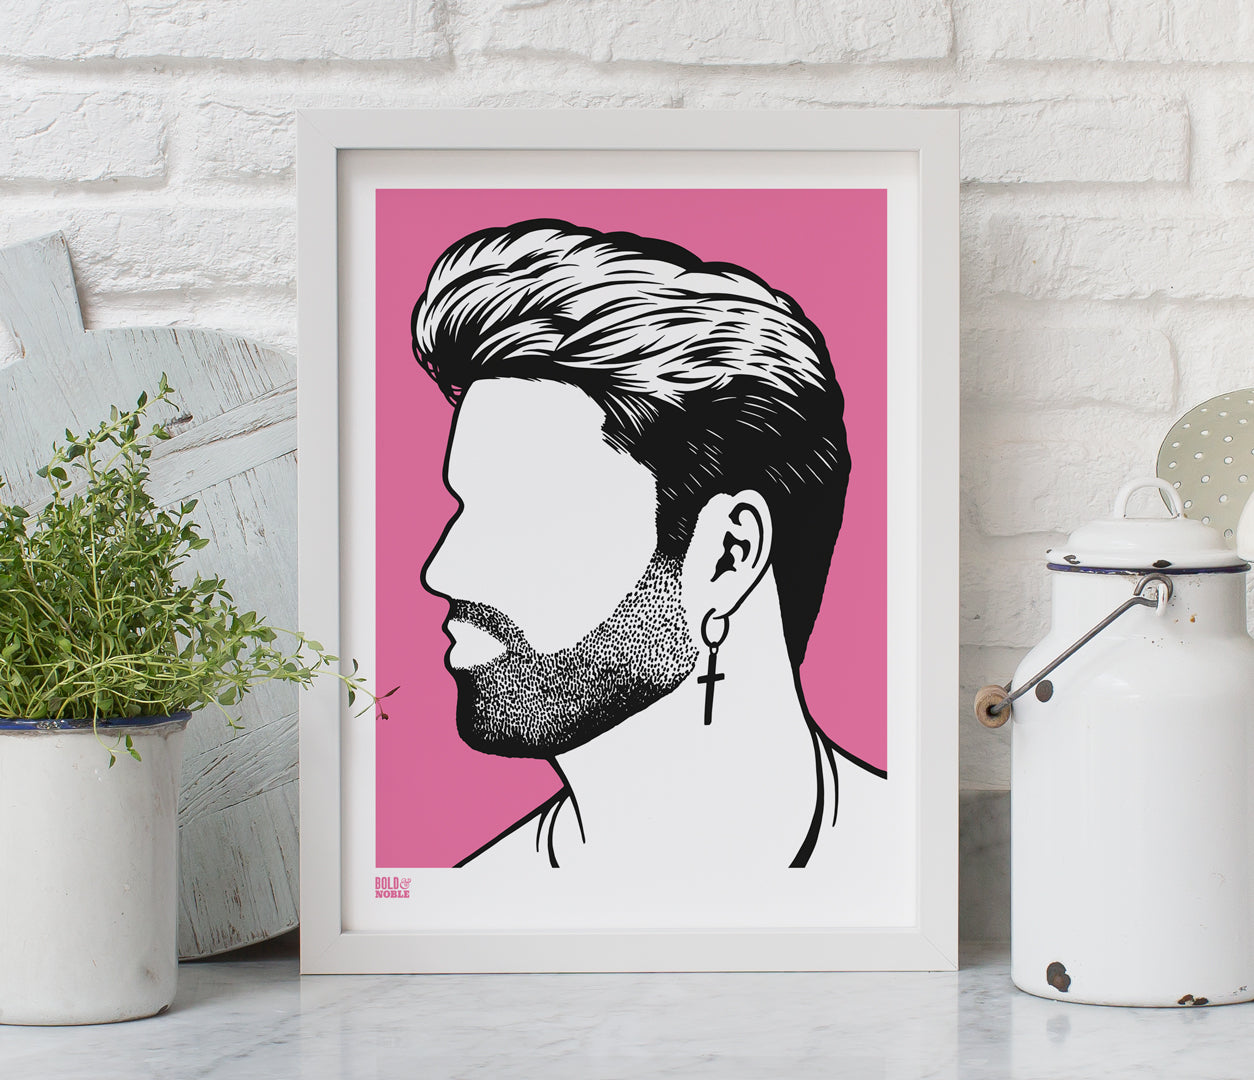 Wall Art ideas: Economical Screen Prints, George Michael print in pink